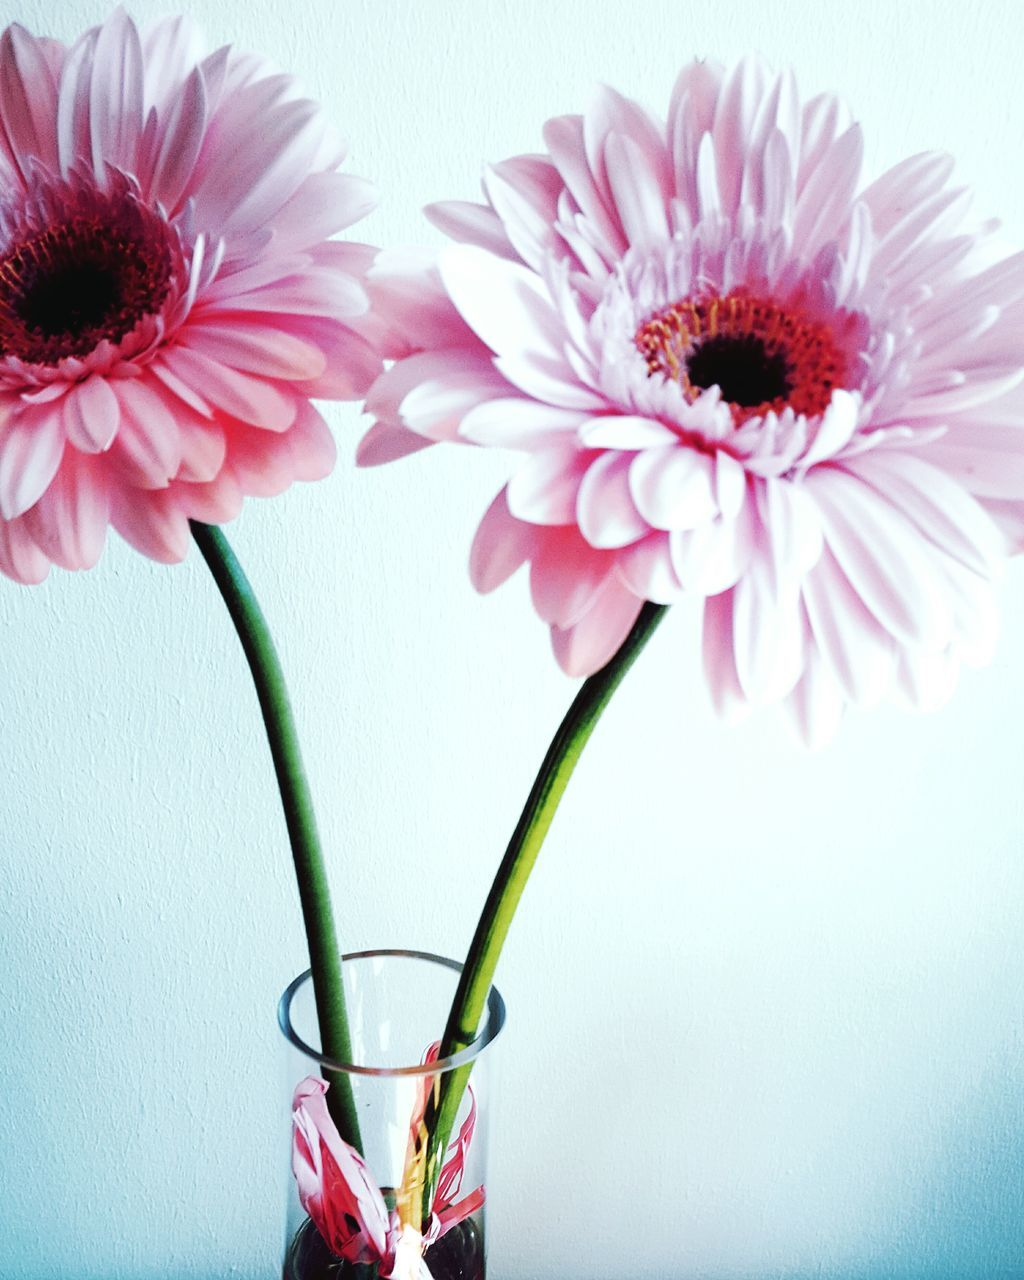 flower, vase, petal, freshness, flower head, beauty in nature, fragility, growth, plant, pink color, nature, no people, blooming, close-up, studio shot, indoors, bouquet, white background, day